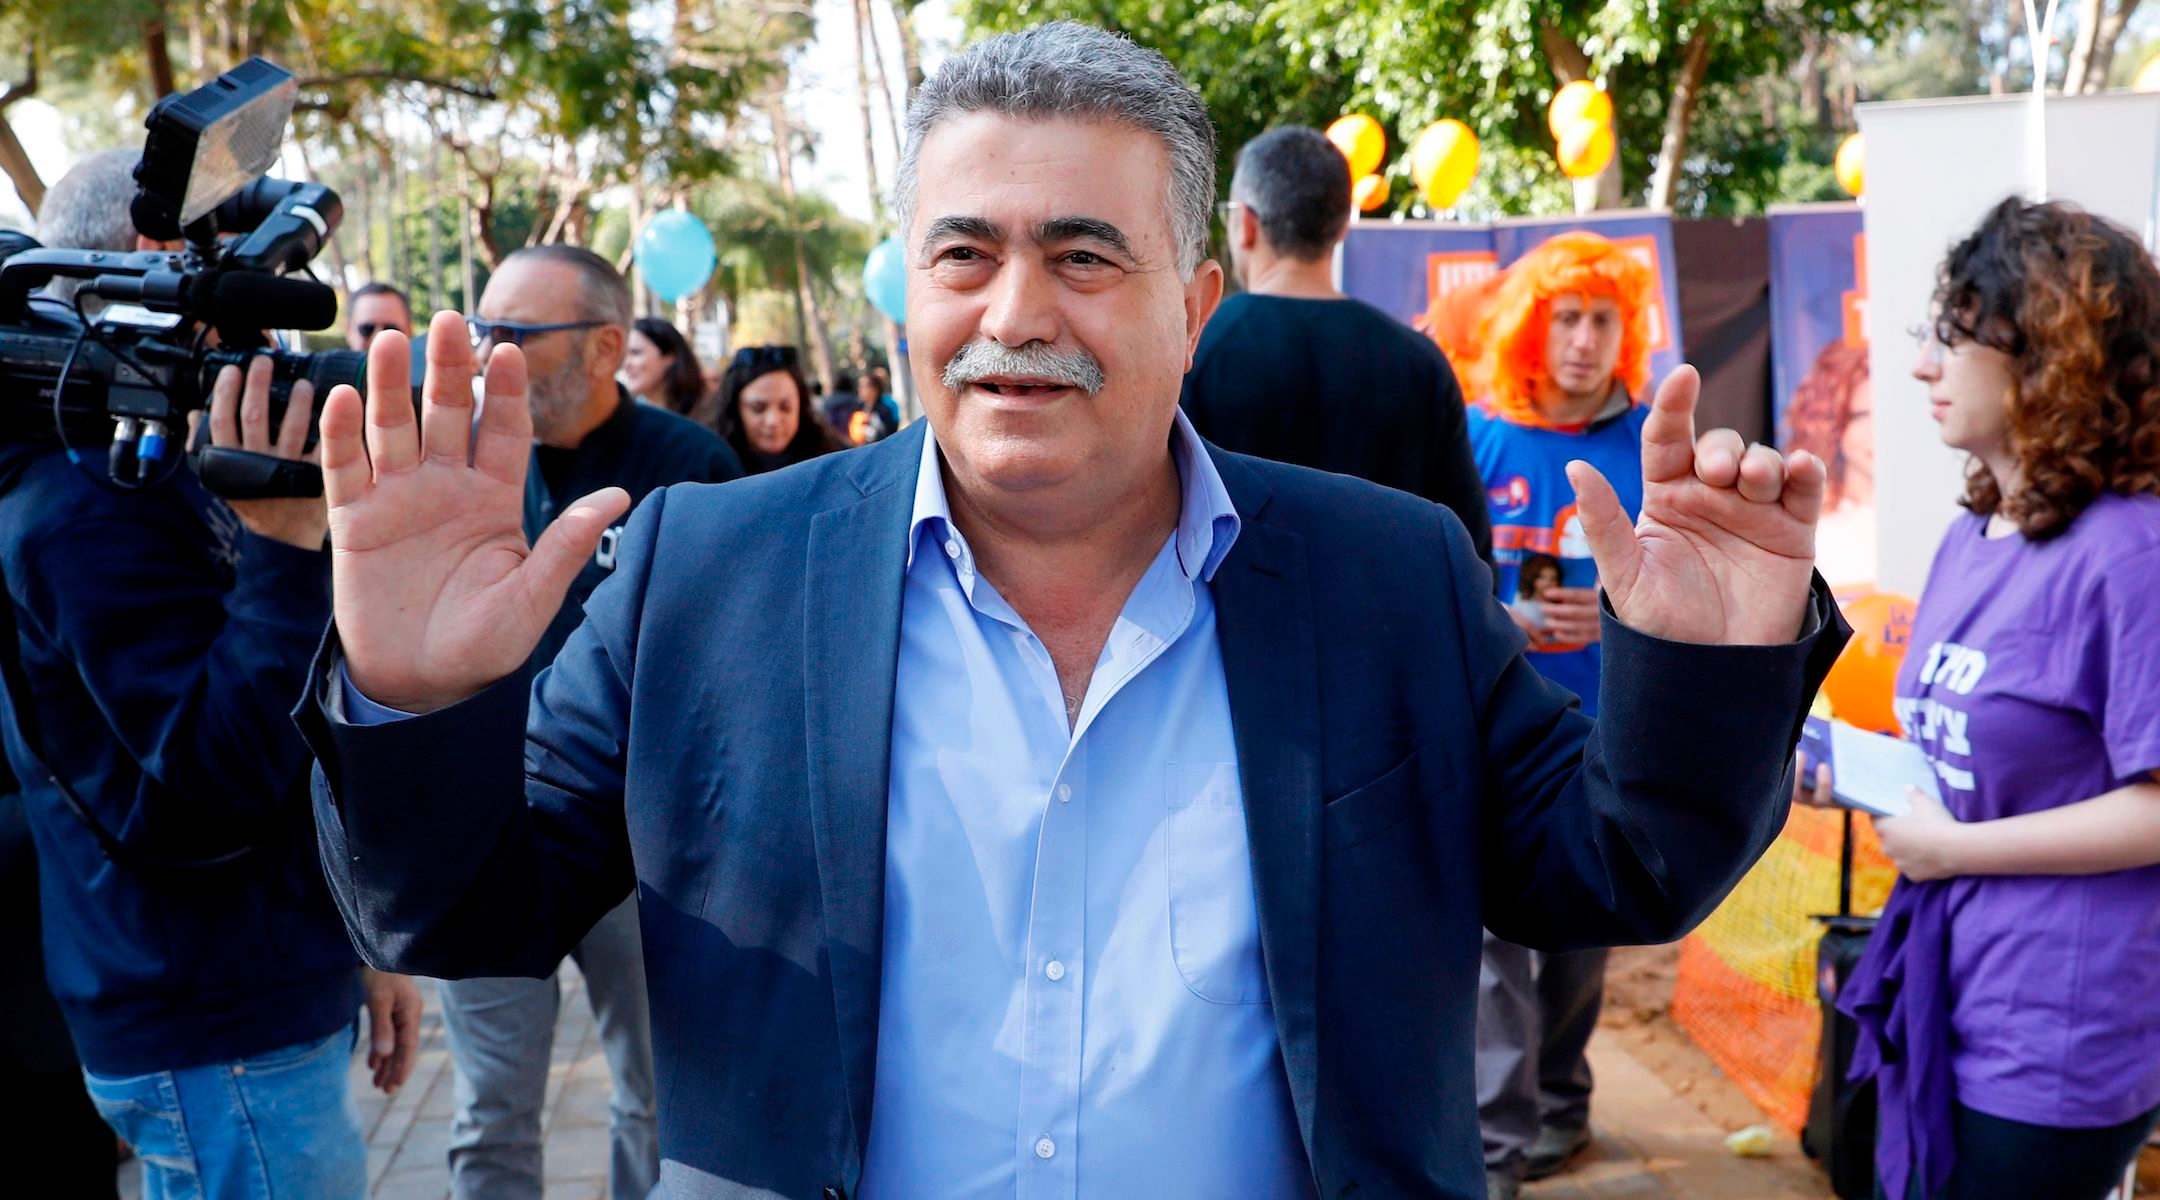 Former Israeli defense minister Amir Peretz poses during the Labor party primaries in Tel Aviv on February 11, 2019. (Jack Guez/Getty Images)